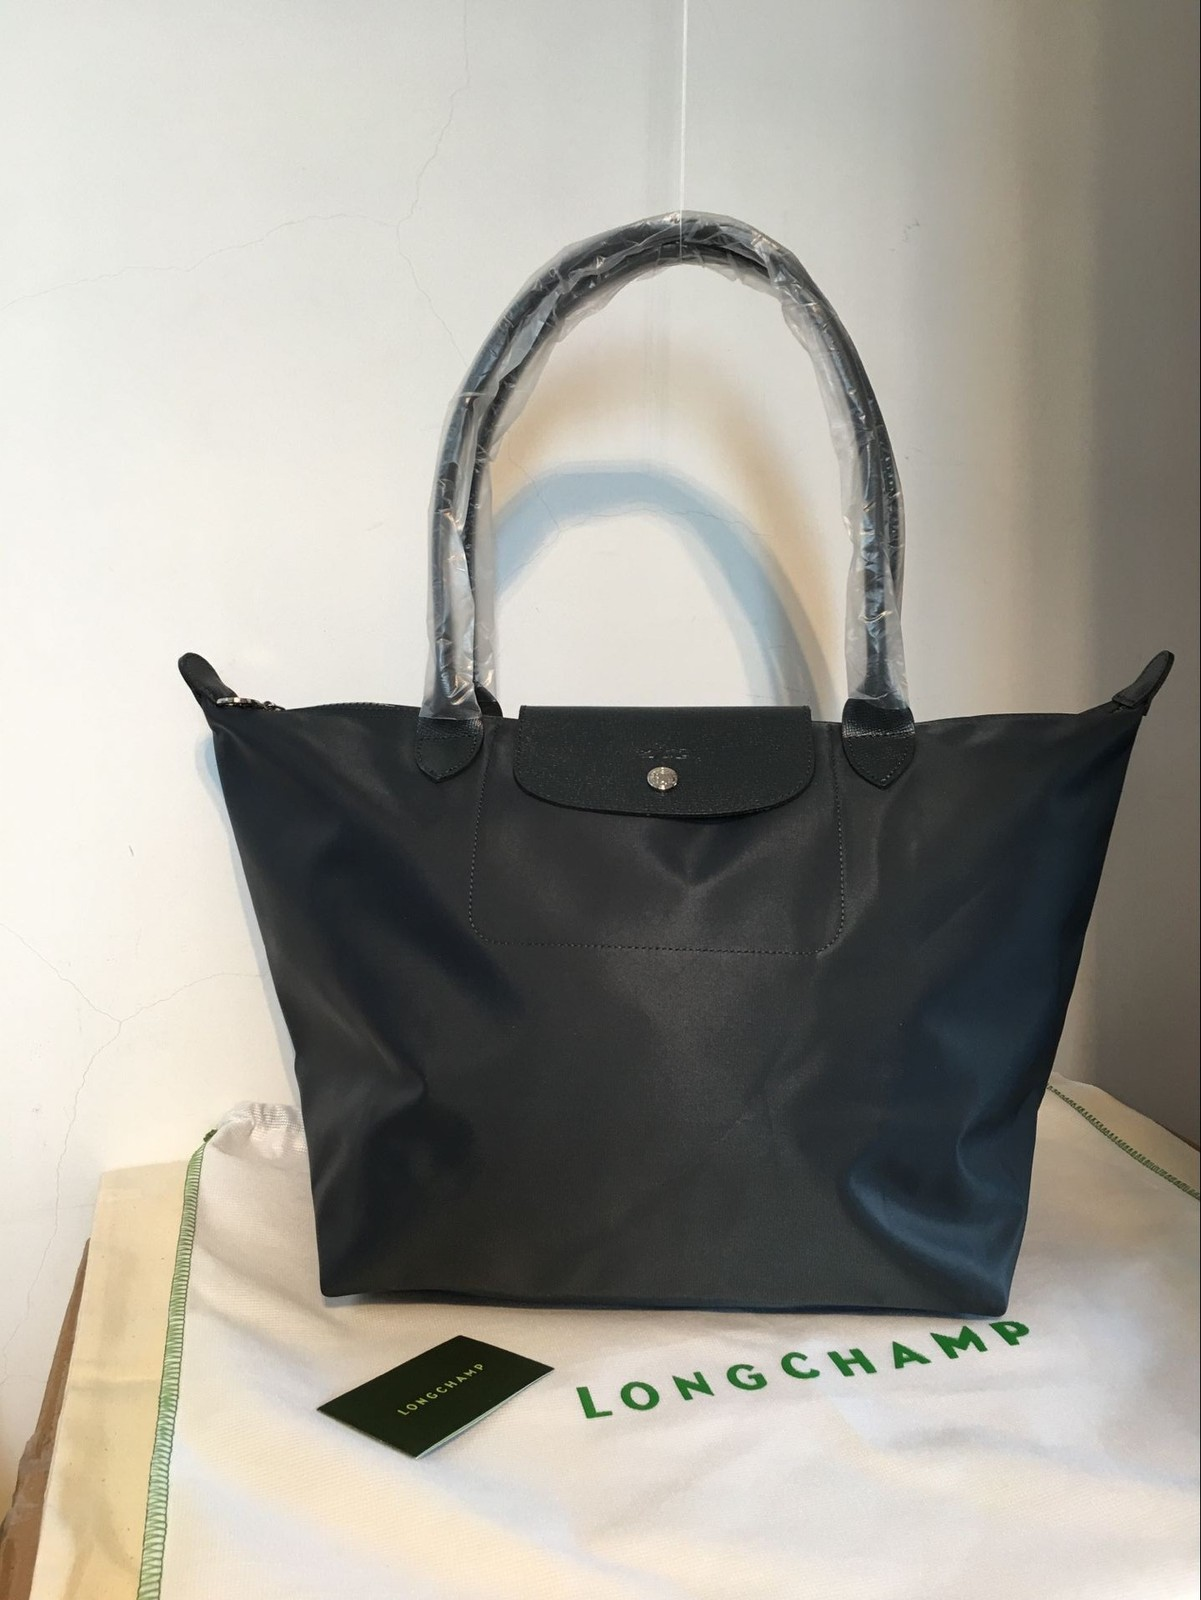 Qq 20170308123942. Qq 20170308123942. France Made Longchamp Le Pliage Neo Large  Tote Bag Graphite 1899578897 Authentic 09ee834c57350